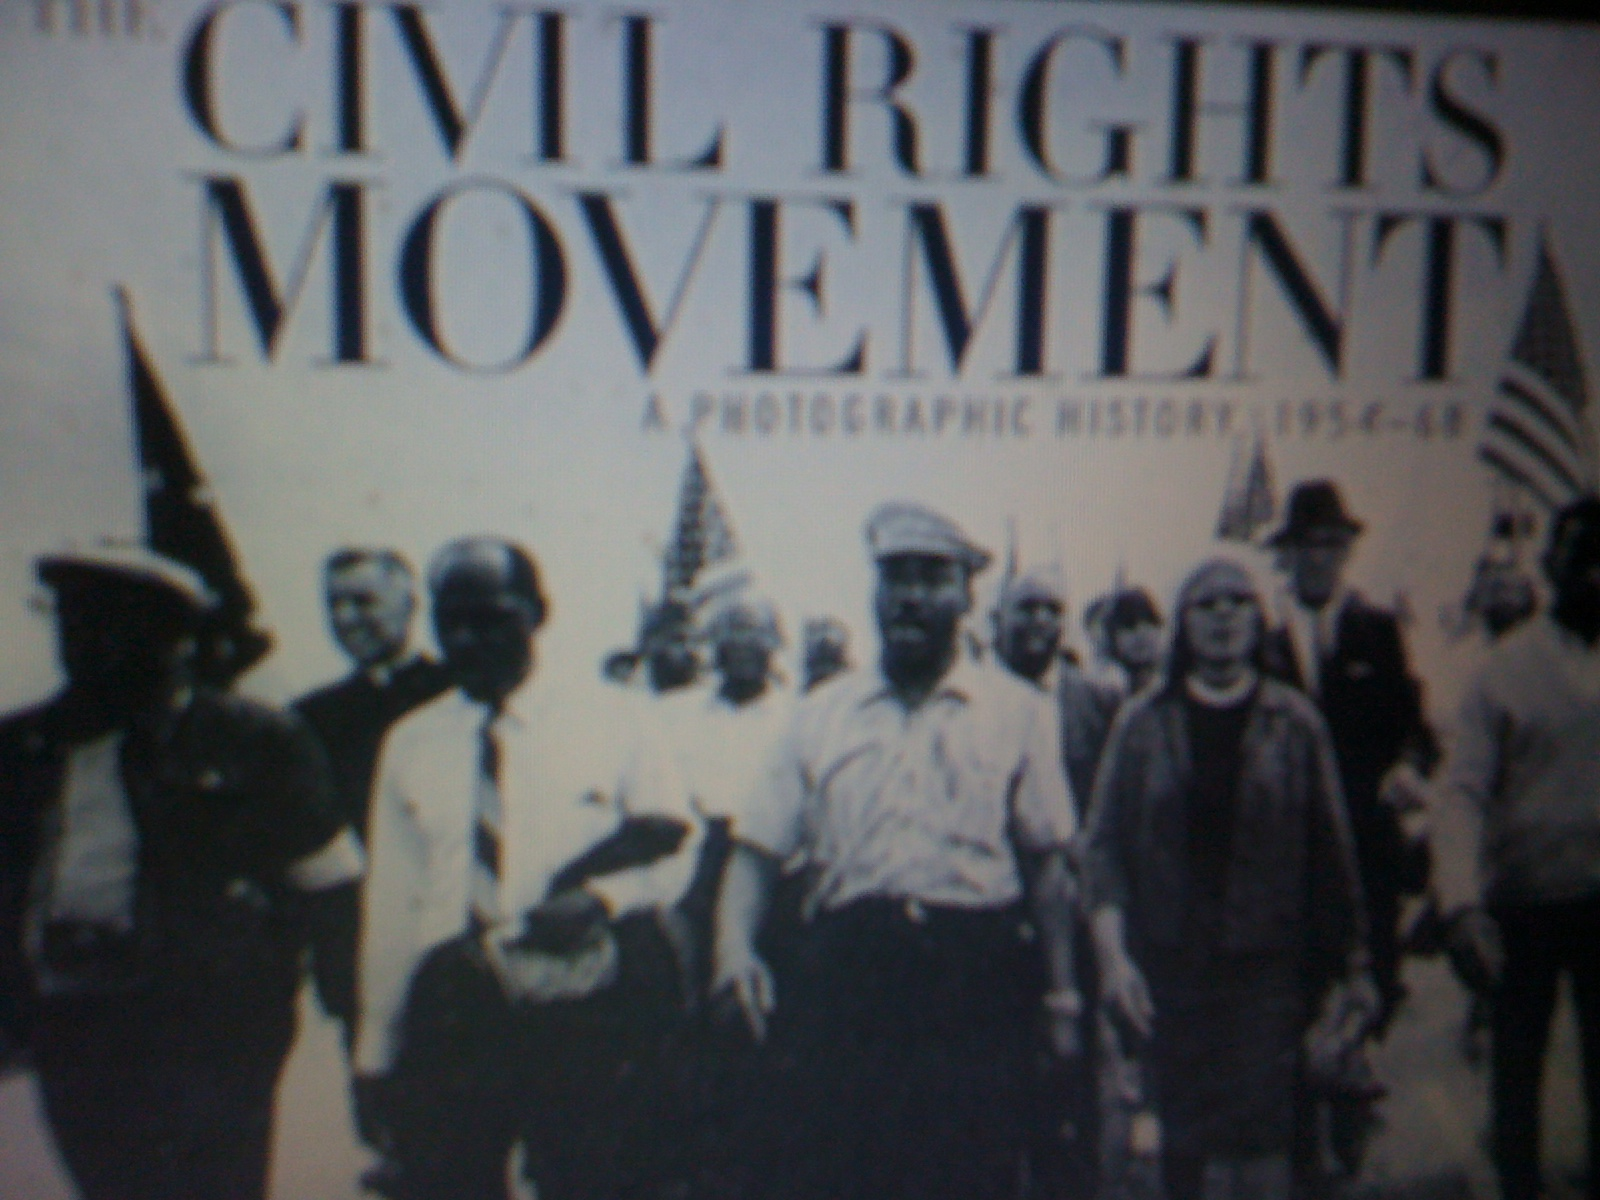 the emergence of social movements in the 1950s and 1960s Civil rights movements are a worldwide series of political movements for equality  before the law  the main aim of the successful civil rights movement and other  social  violence escalated, resulting in the rise of the provisional irish  republican  taken by the homophile movement of the 1940s, 1950s and early  1960s.